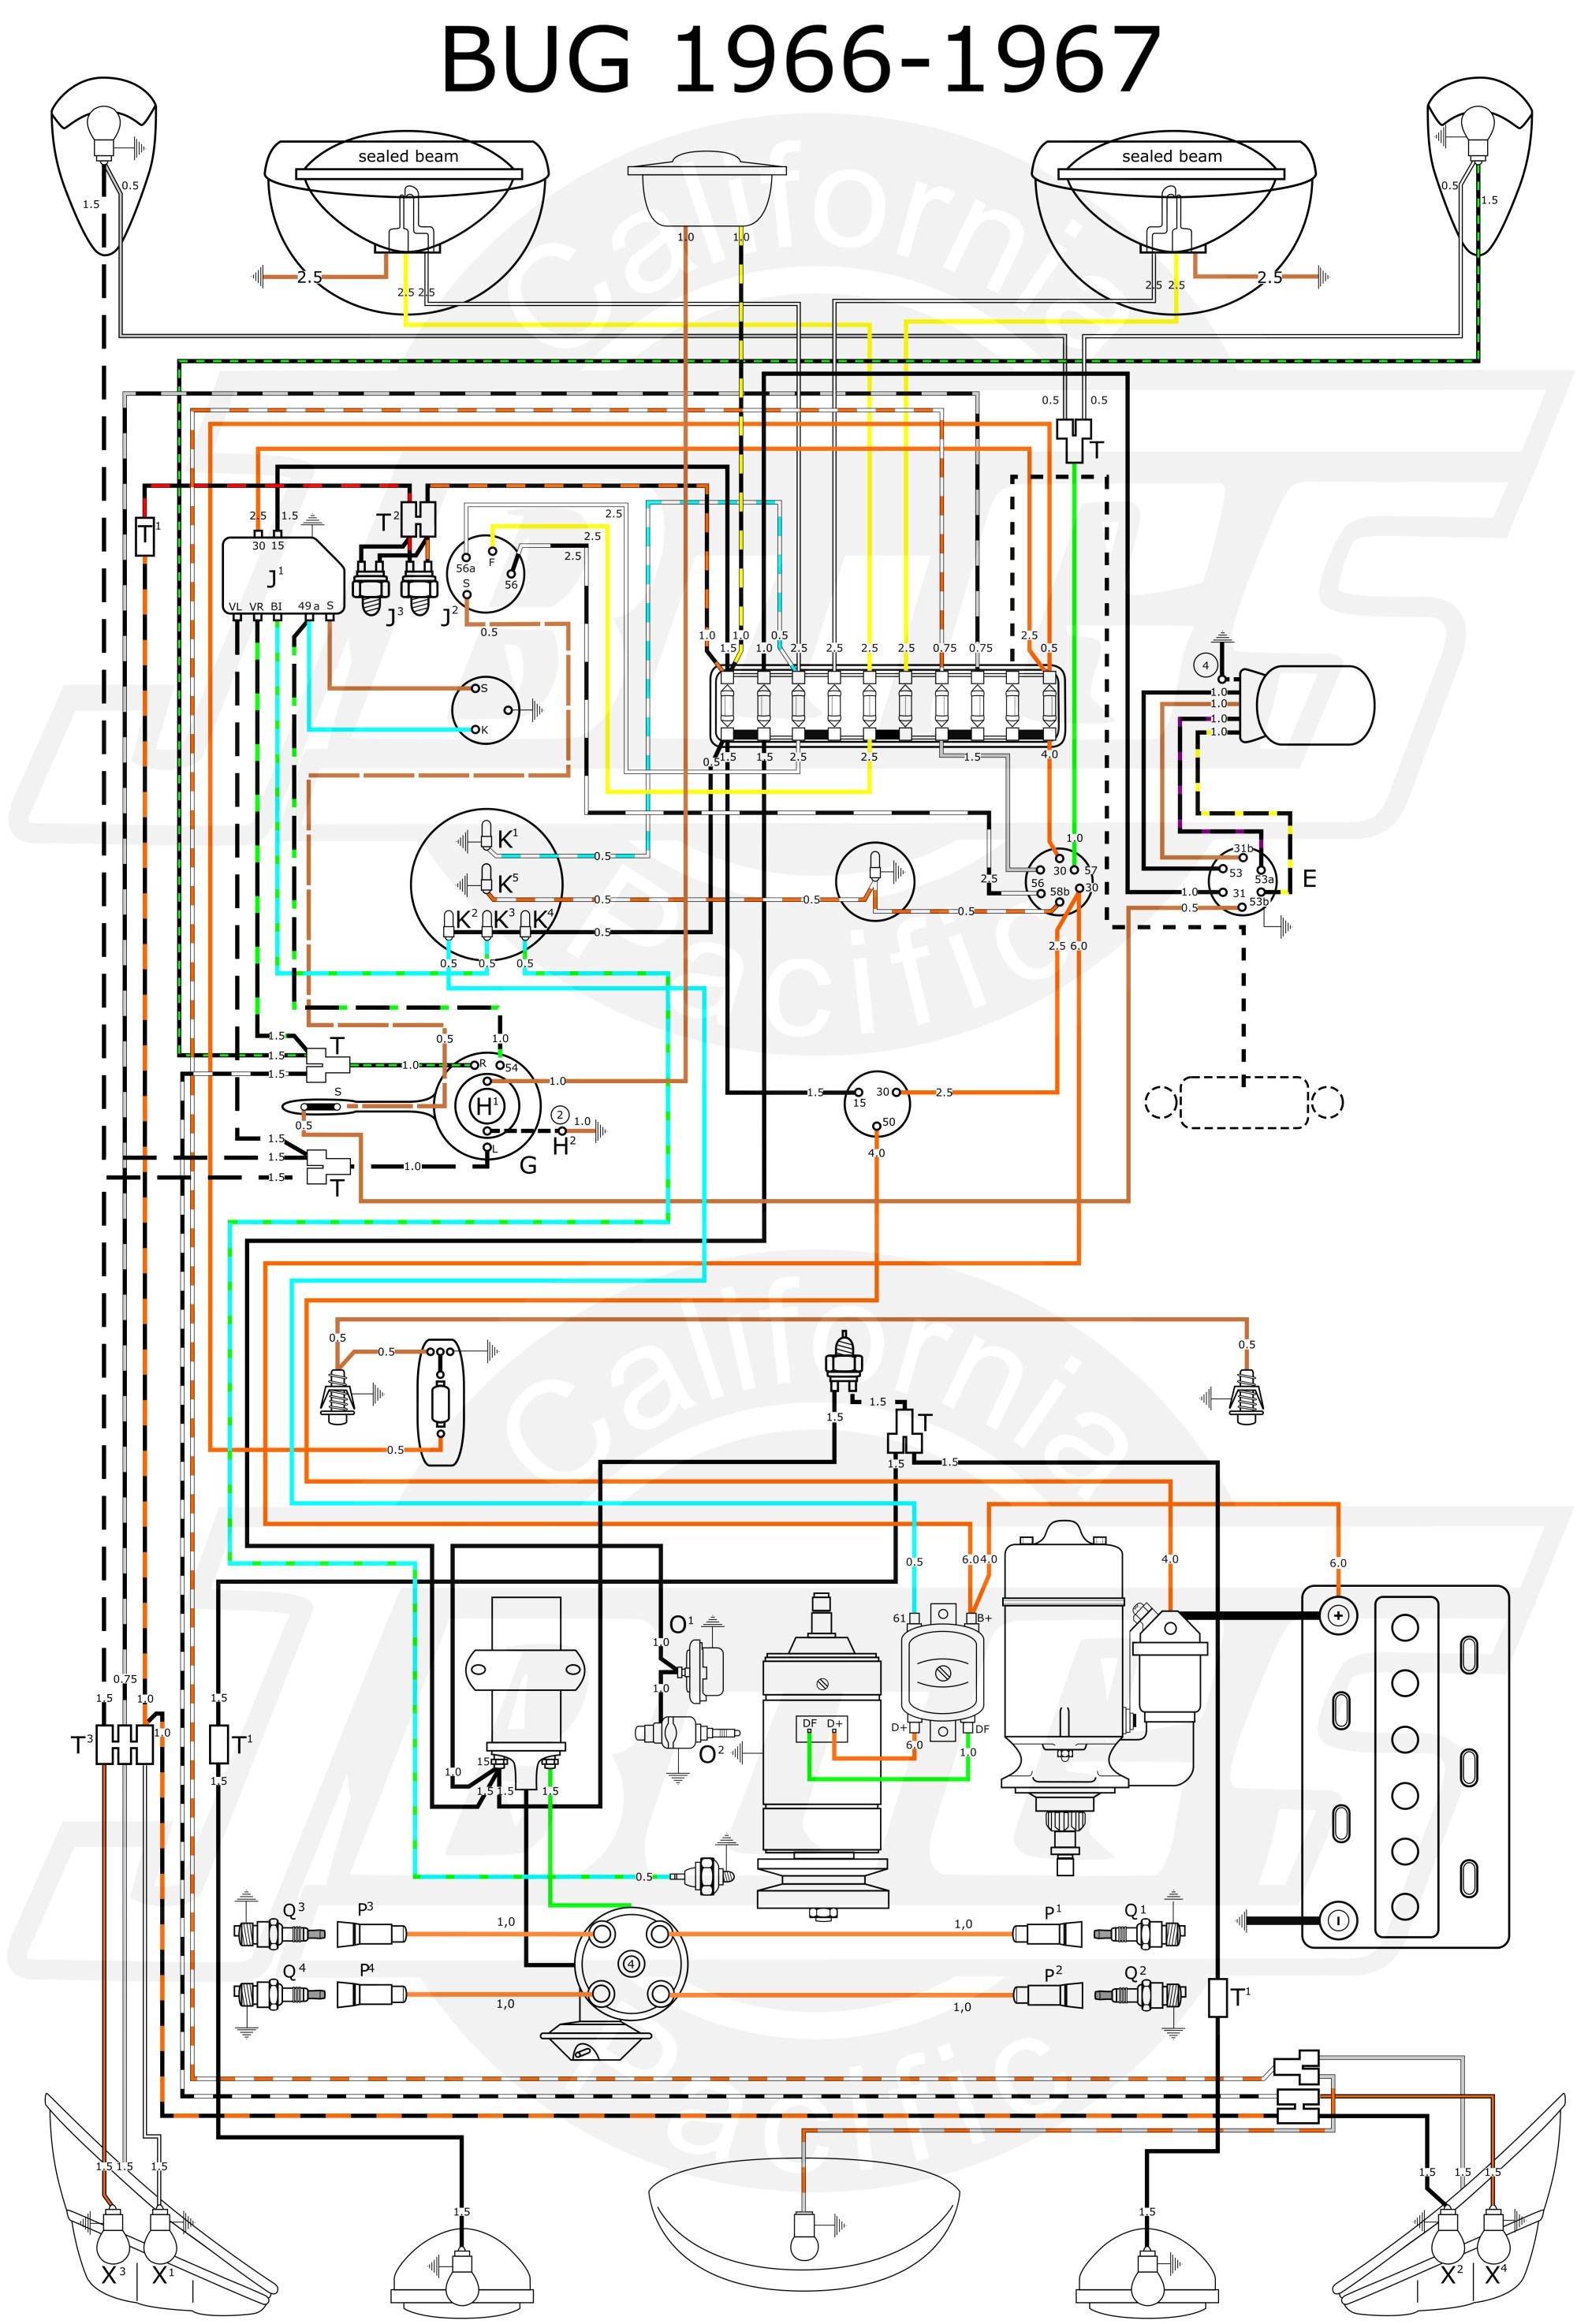 hight resolution of 67 nova wiper motor wiring diagram wiring library rh 12 bloxhuette de 65 nova wiring diagram 67 nova dash wiring diagram